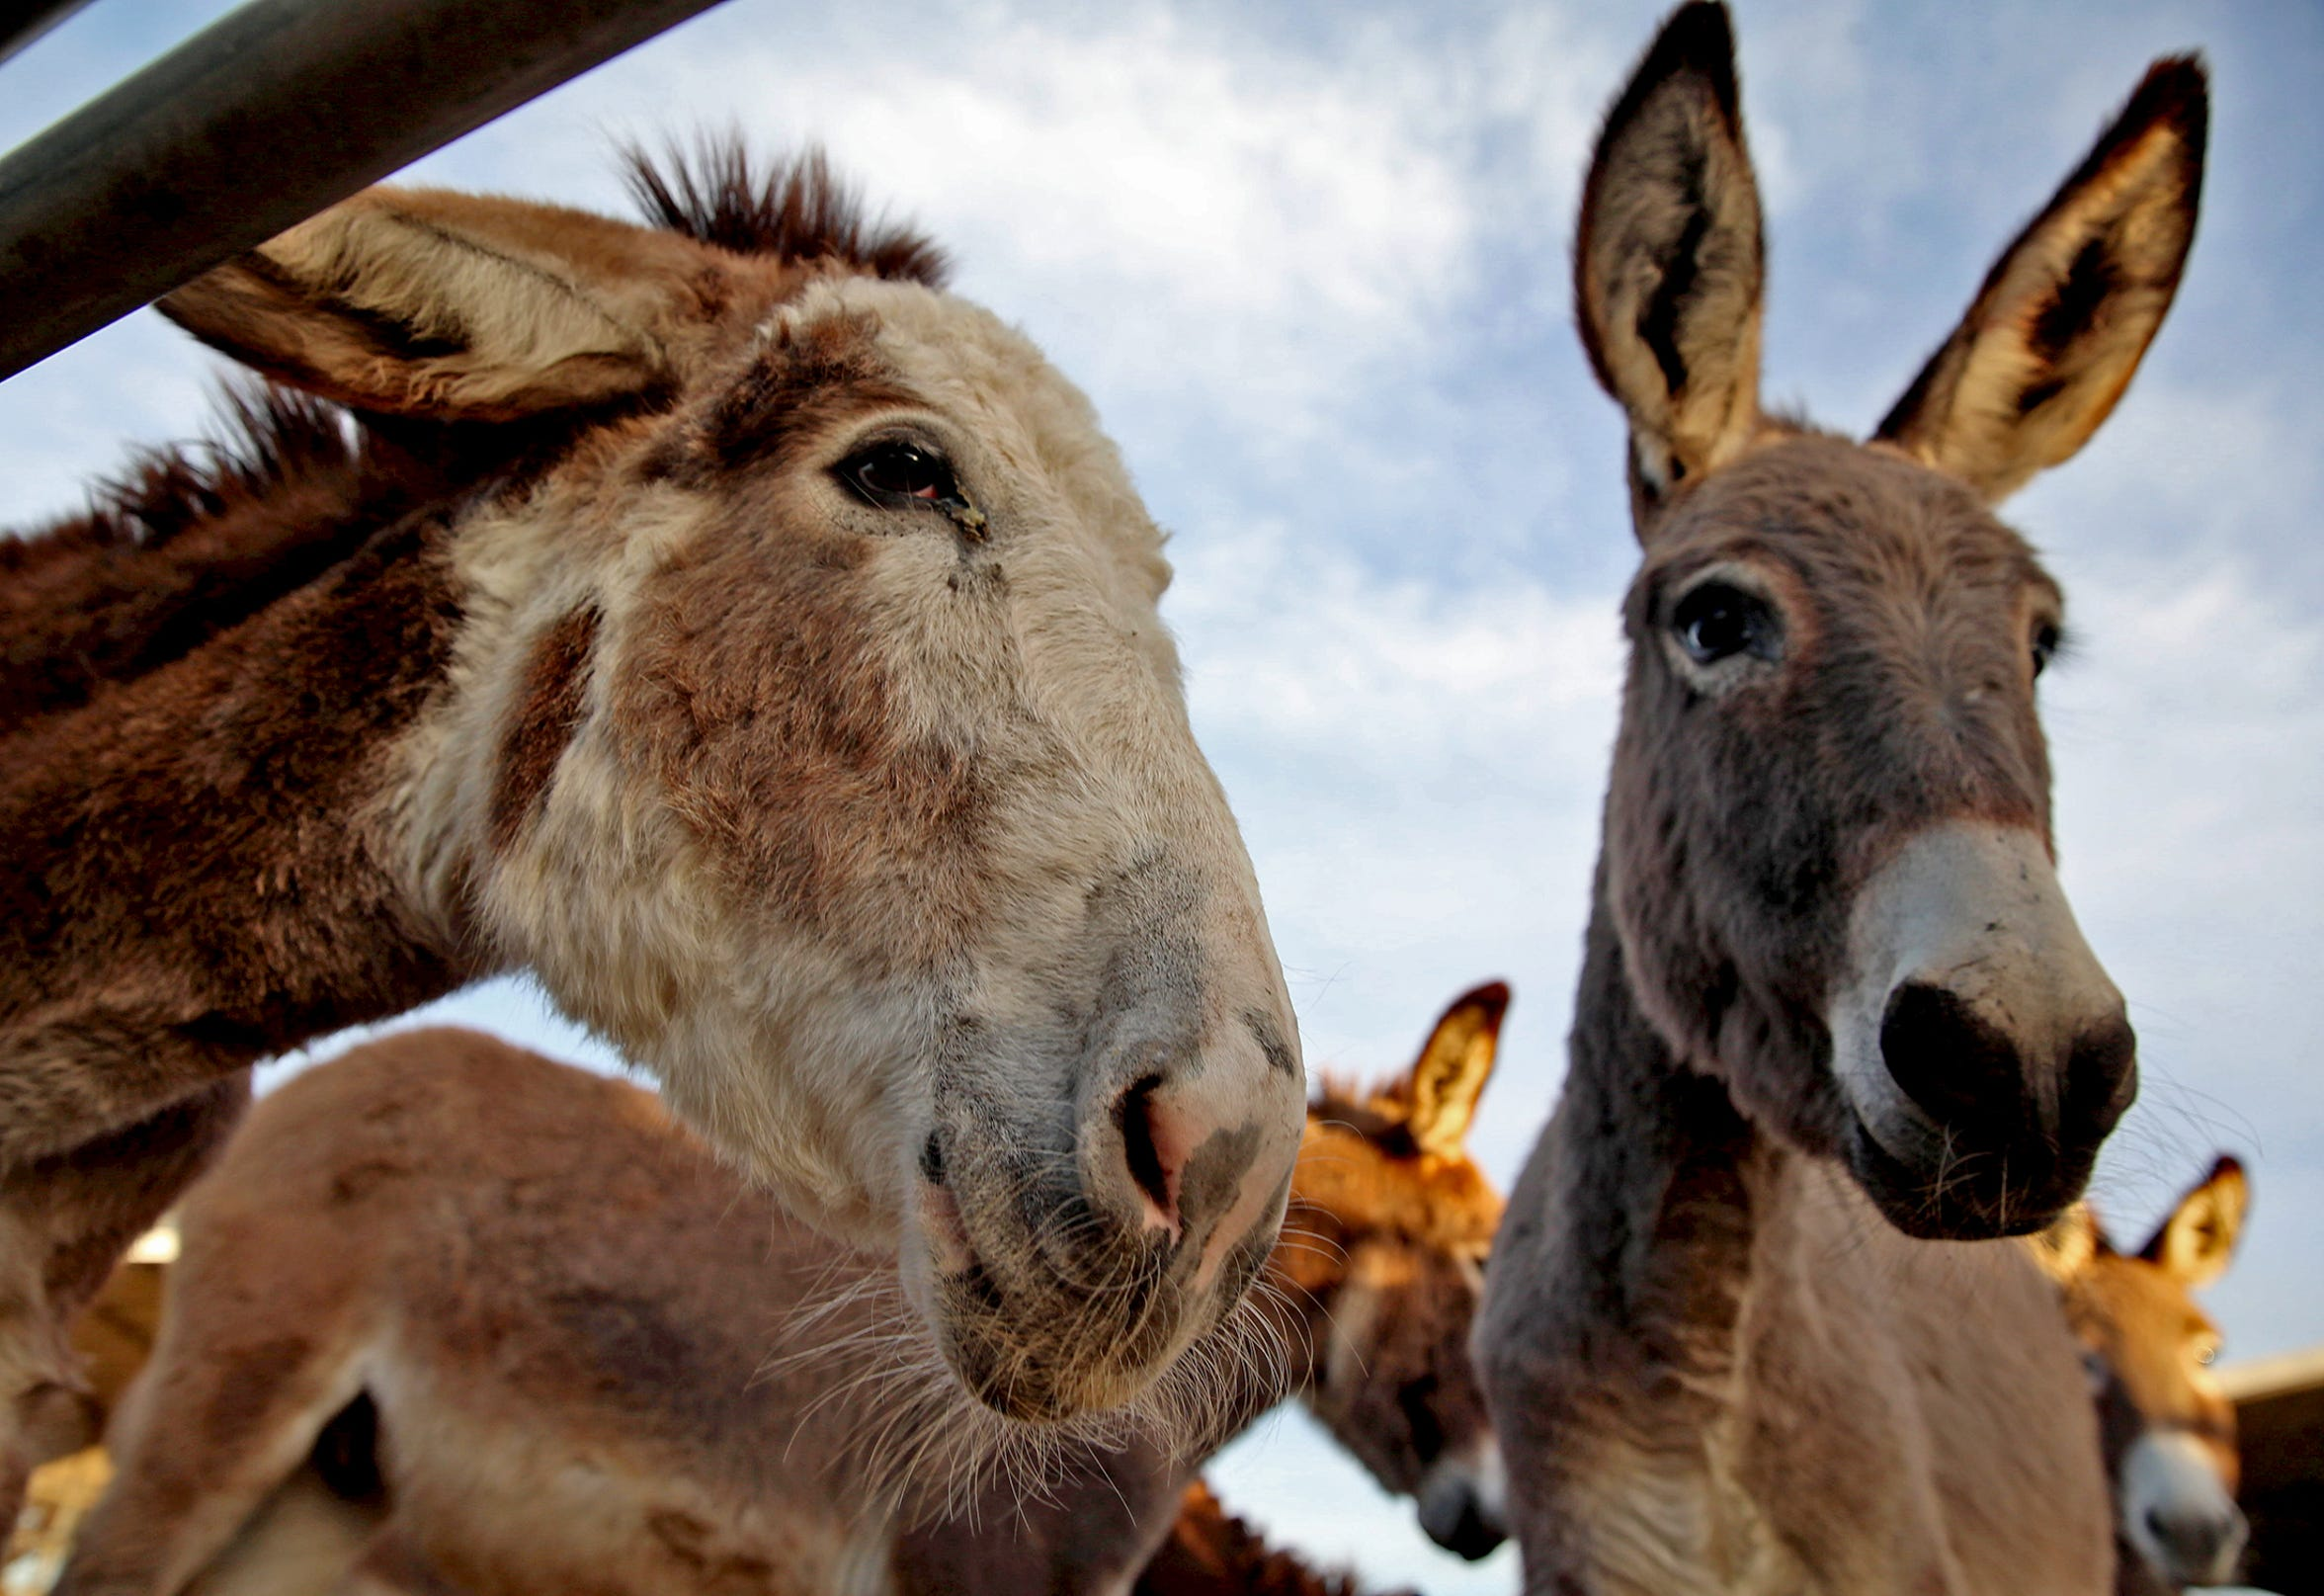 Donkeys roam an enclosure at the Peaceful Valley Donkey Rescue on Tuesday, Nov. 12, 2019.